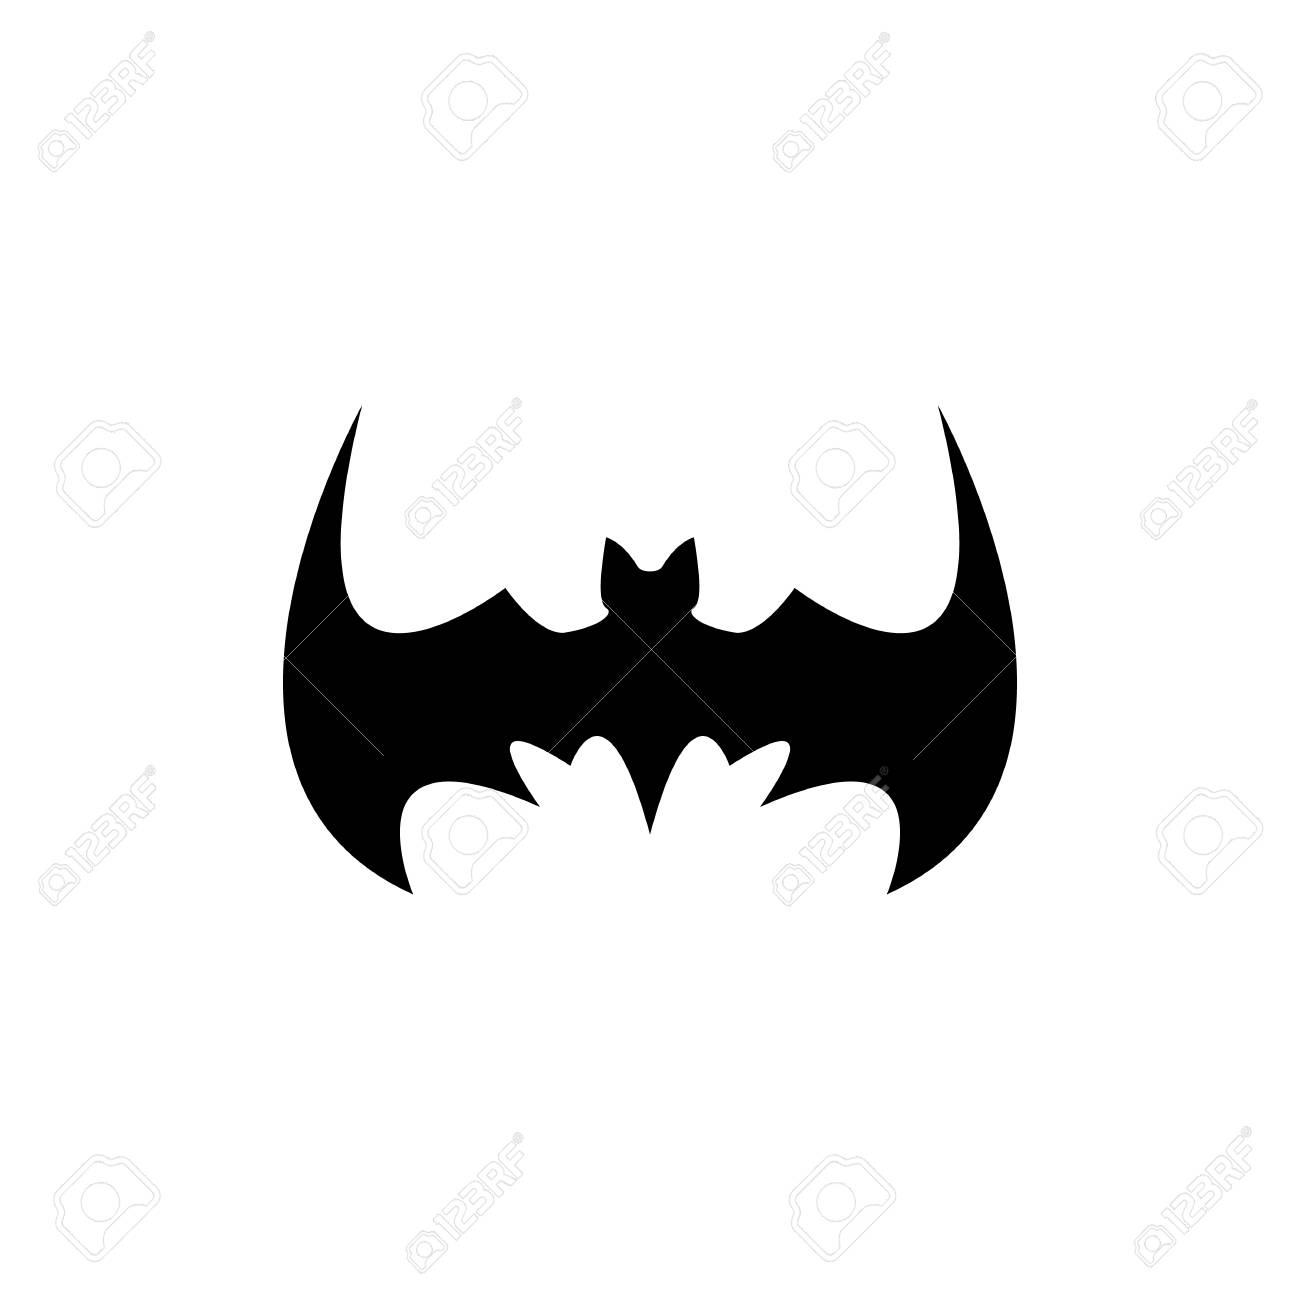 vector vector halloween black bat animal icon or sign isolated on white background vector bat silhouette with wings